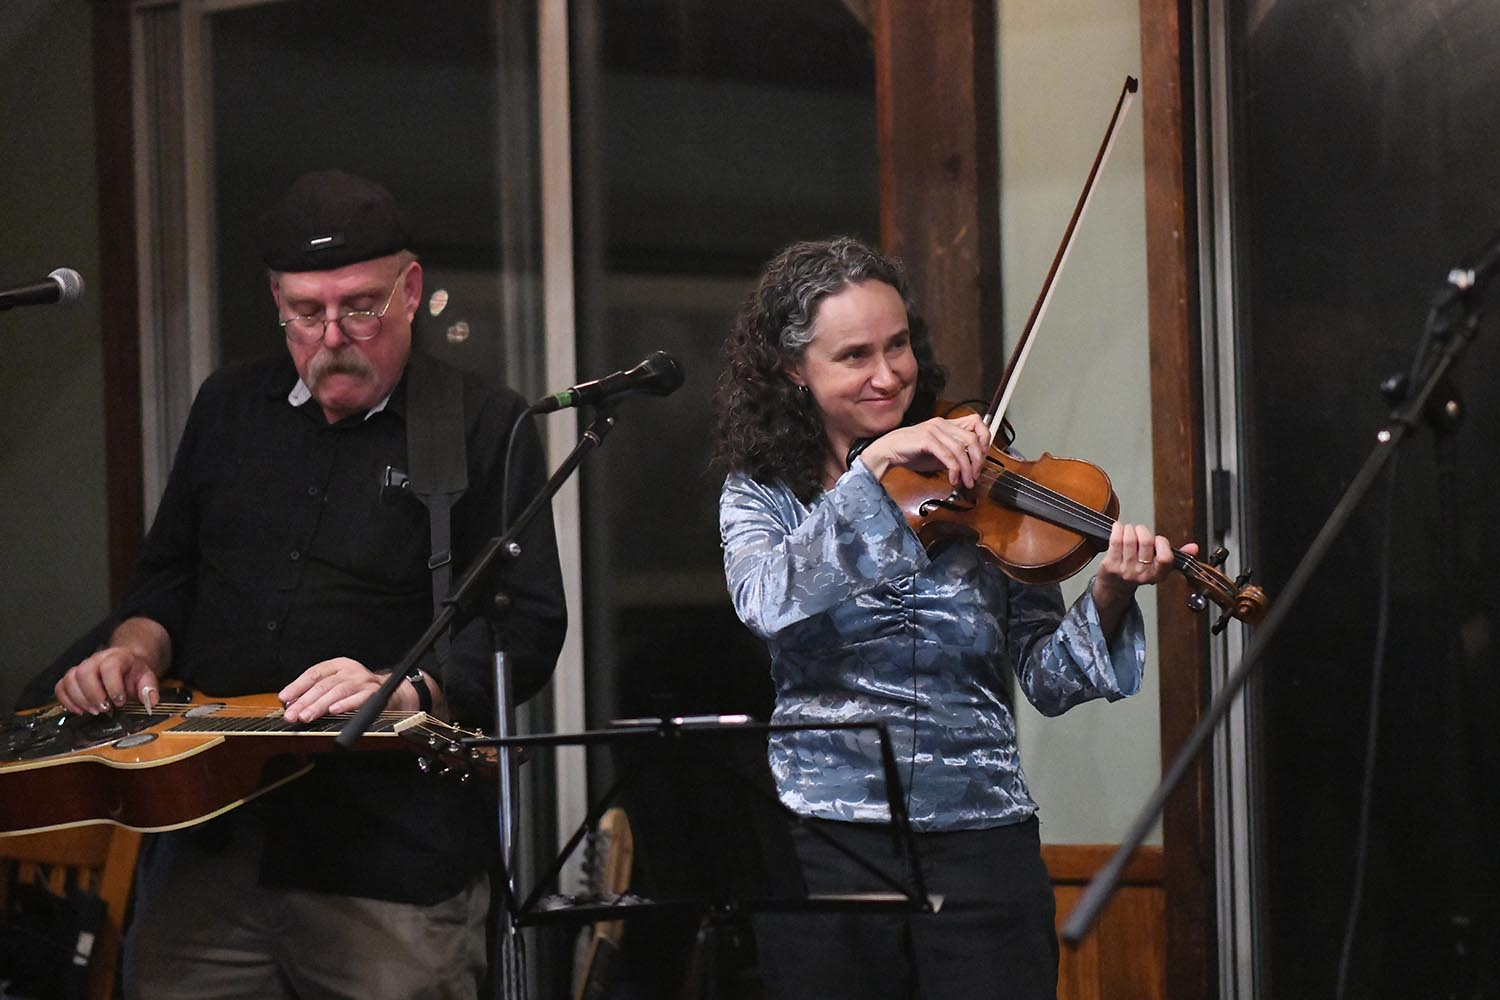 Fiddle player and lead singer Rebecca McCallum, head cataloging Olin Library, plays fiddle and is the group's lead singer.